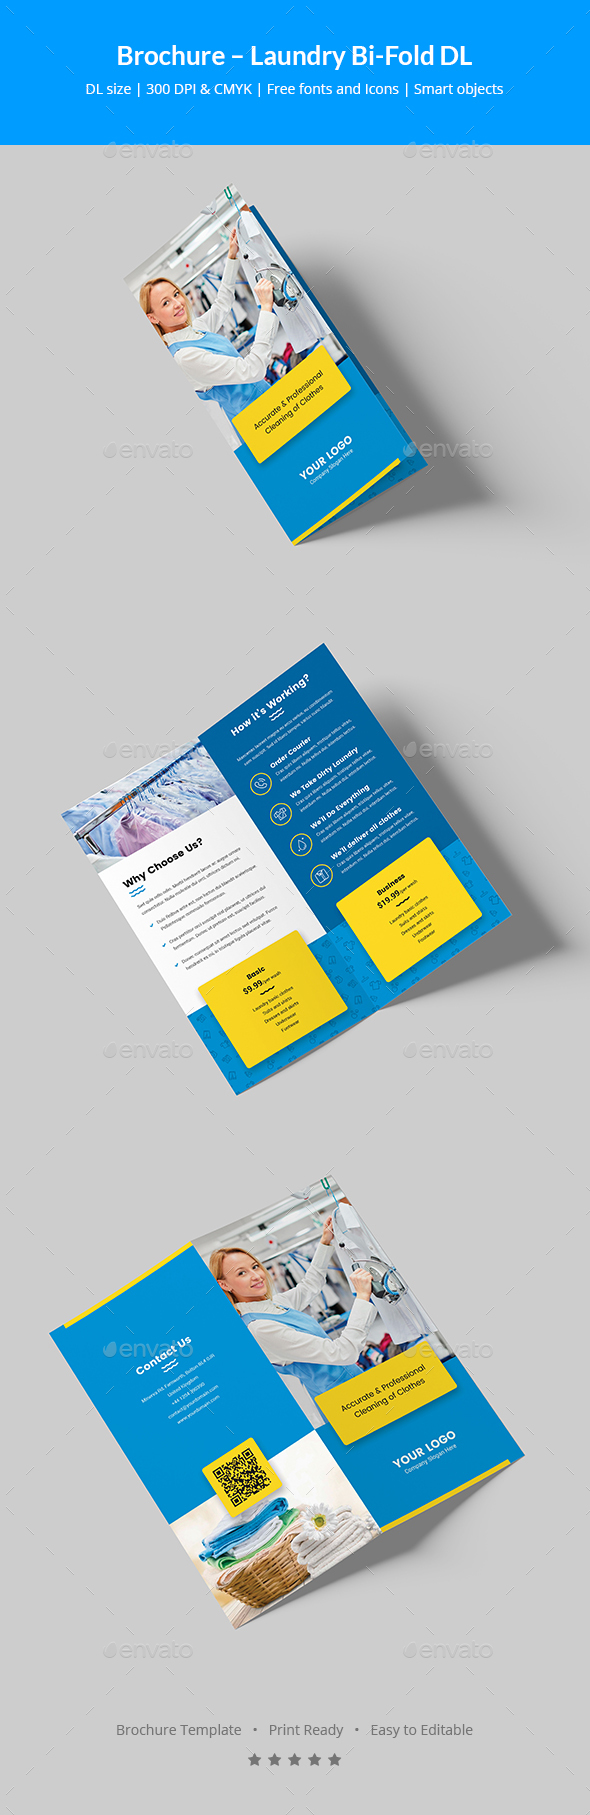 GraphicRiver Brochure Laundry Bi-Fold DL 20690015